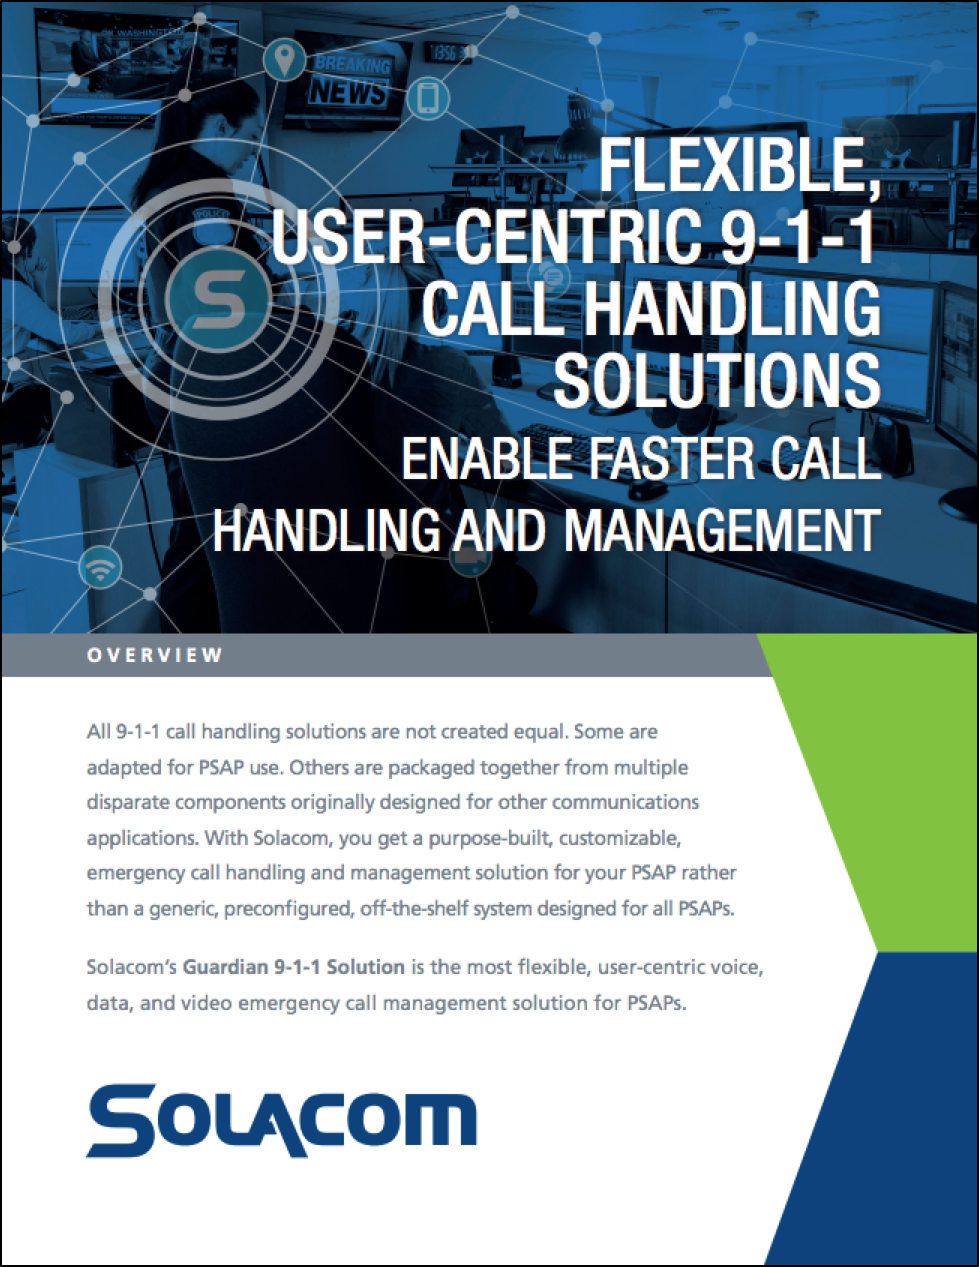 Solacom company overview front page